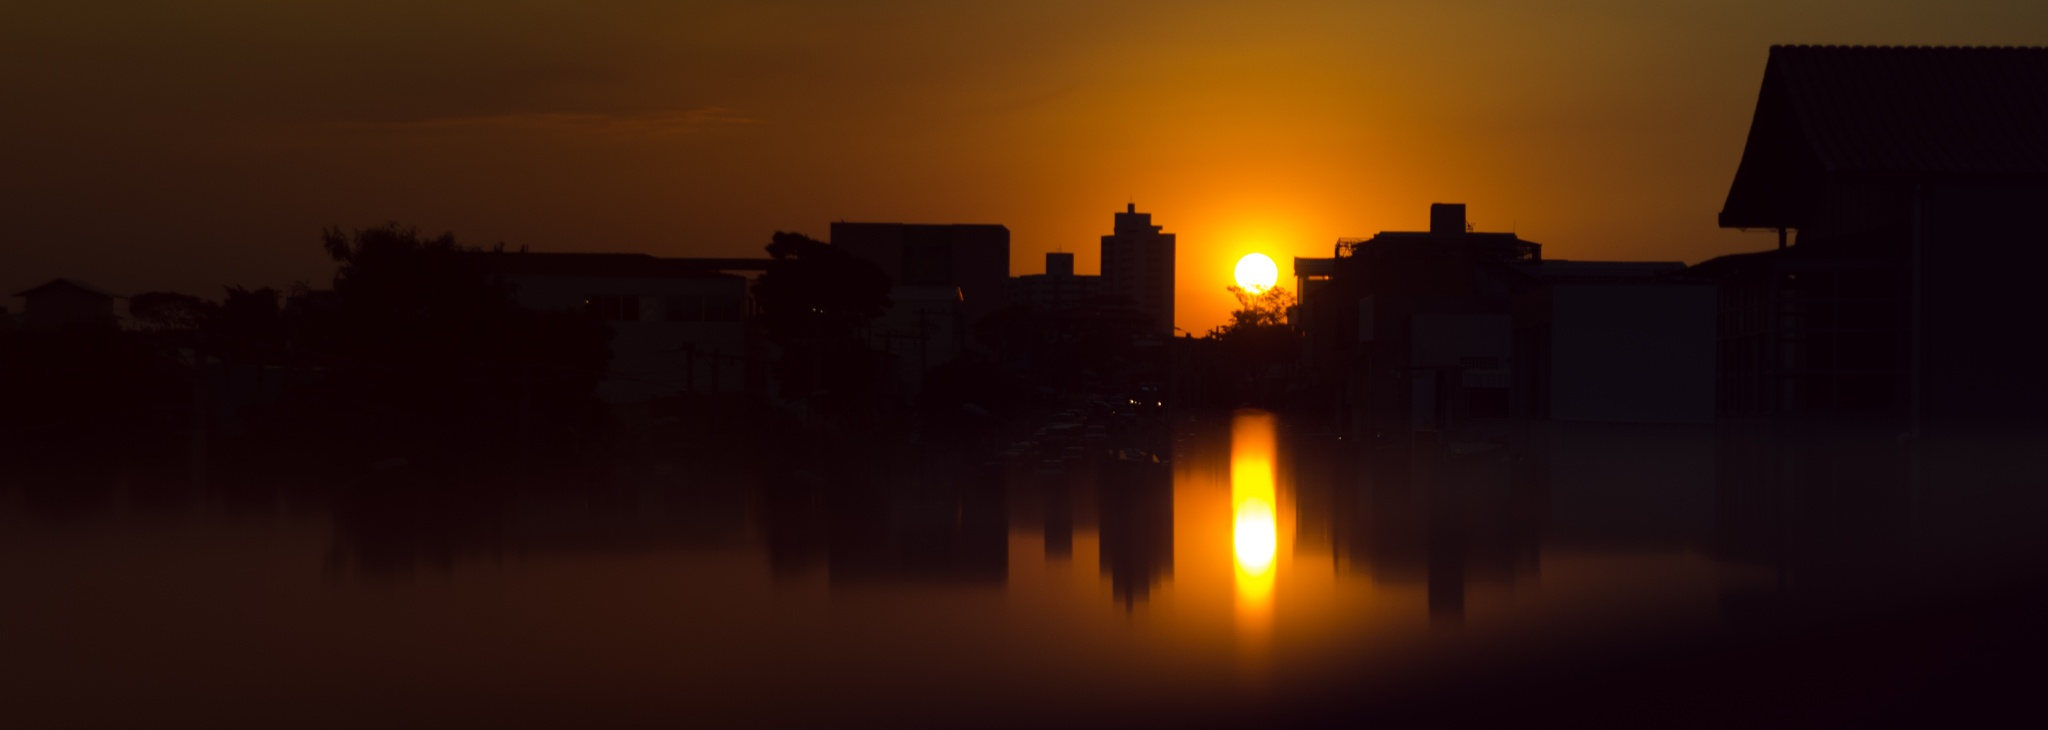 Sunset  by pabloguedes